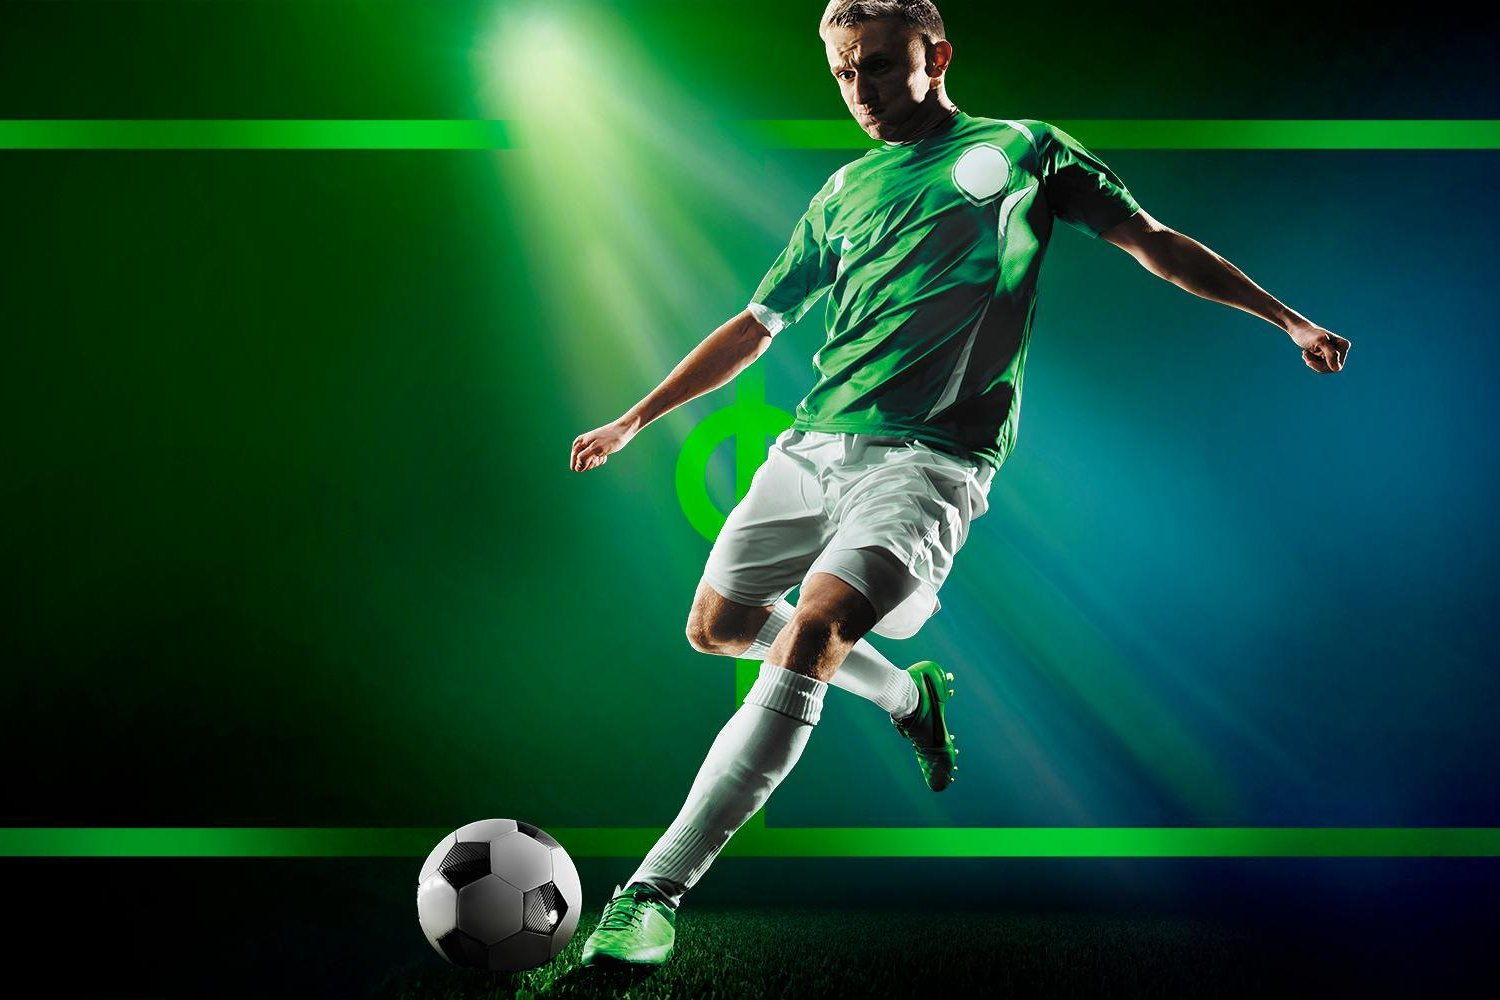 Famous Official Online Soccer Gambling Sites Offer the Most Popular Betting Markets